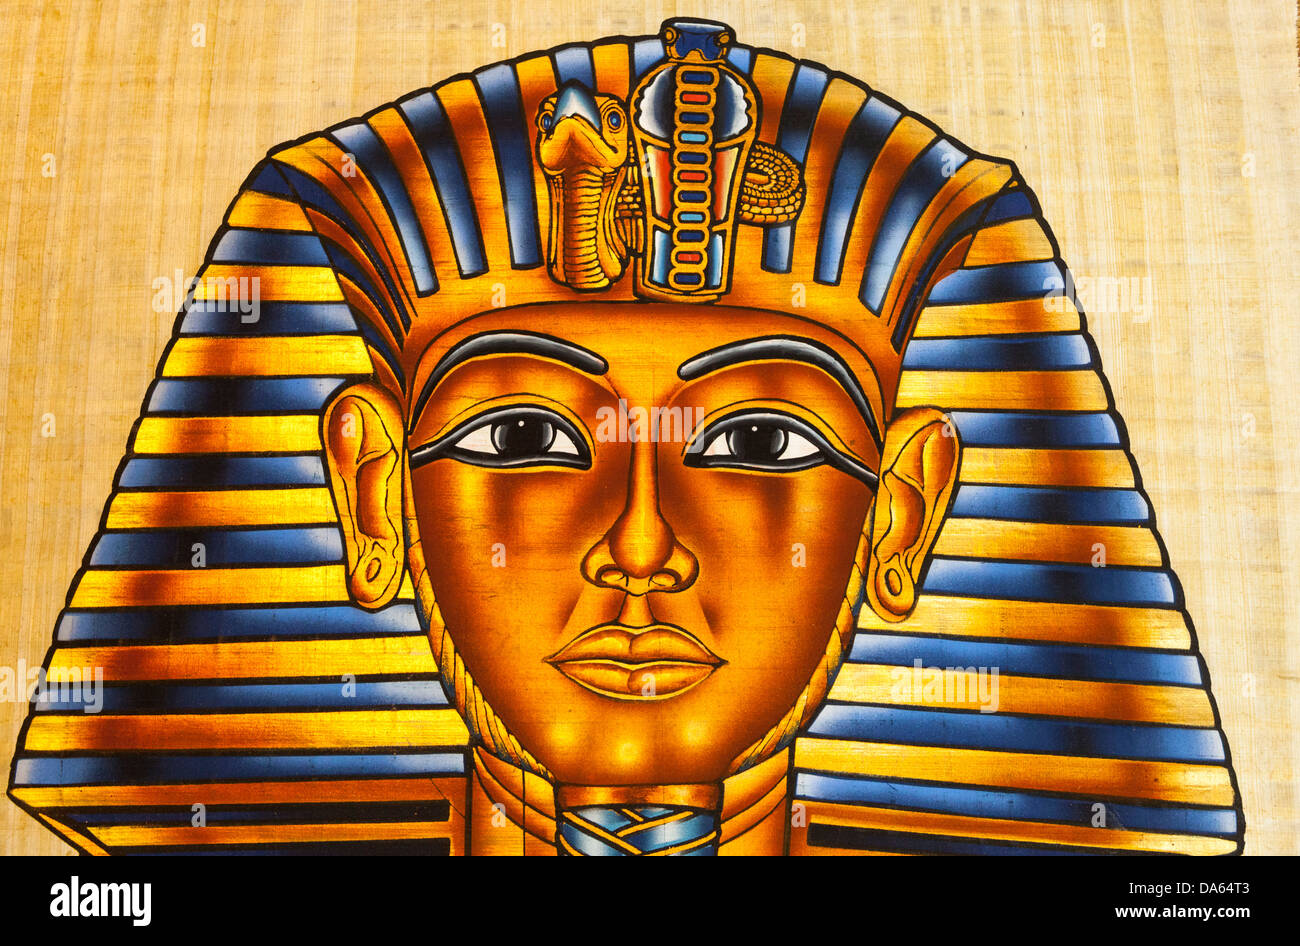 essay on king tut murder The results of a ct scan done on king tut's mummy indicate the boy king was not murdered, but may have died due to a leg injury, egypt's top archaeologist says.